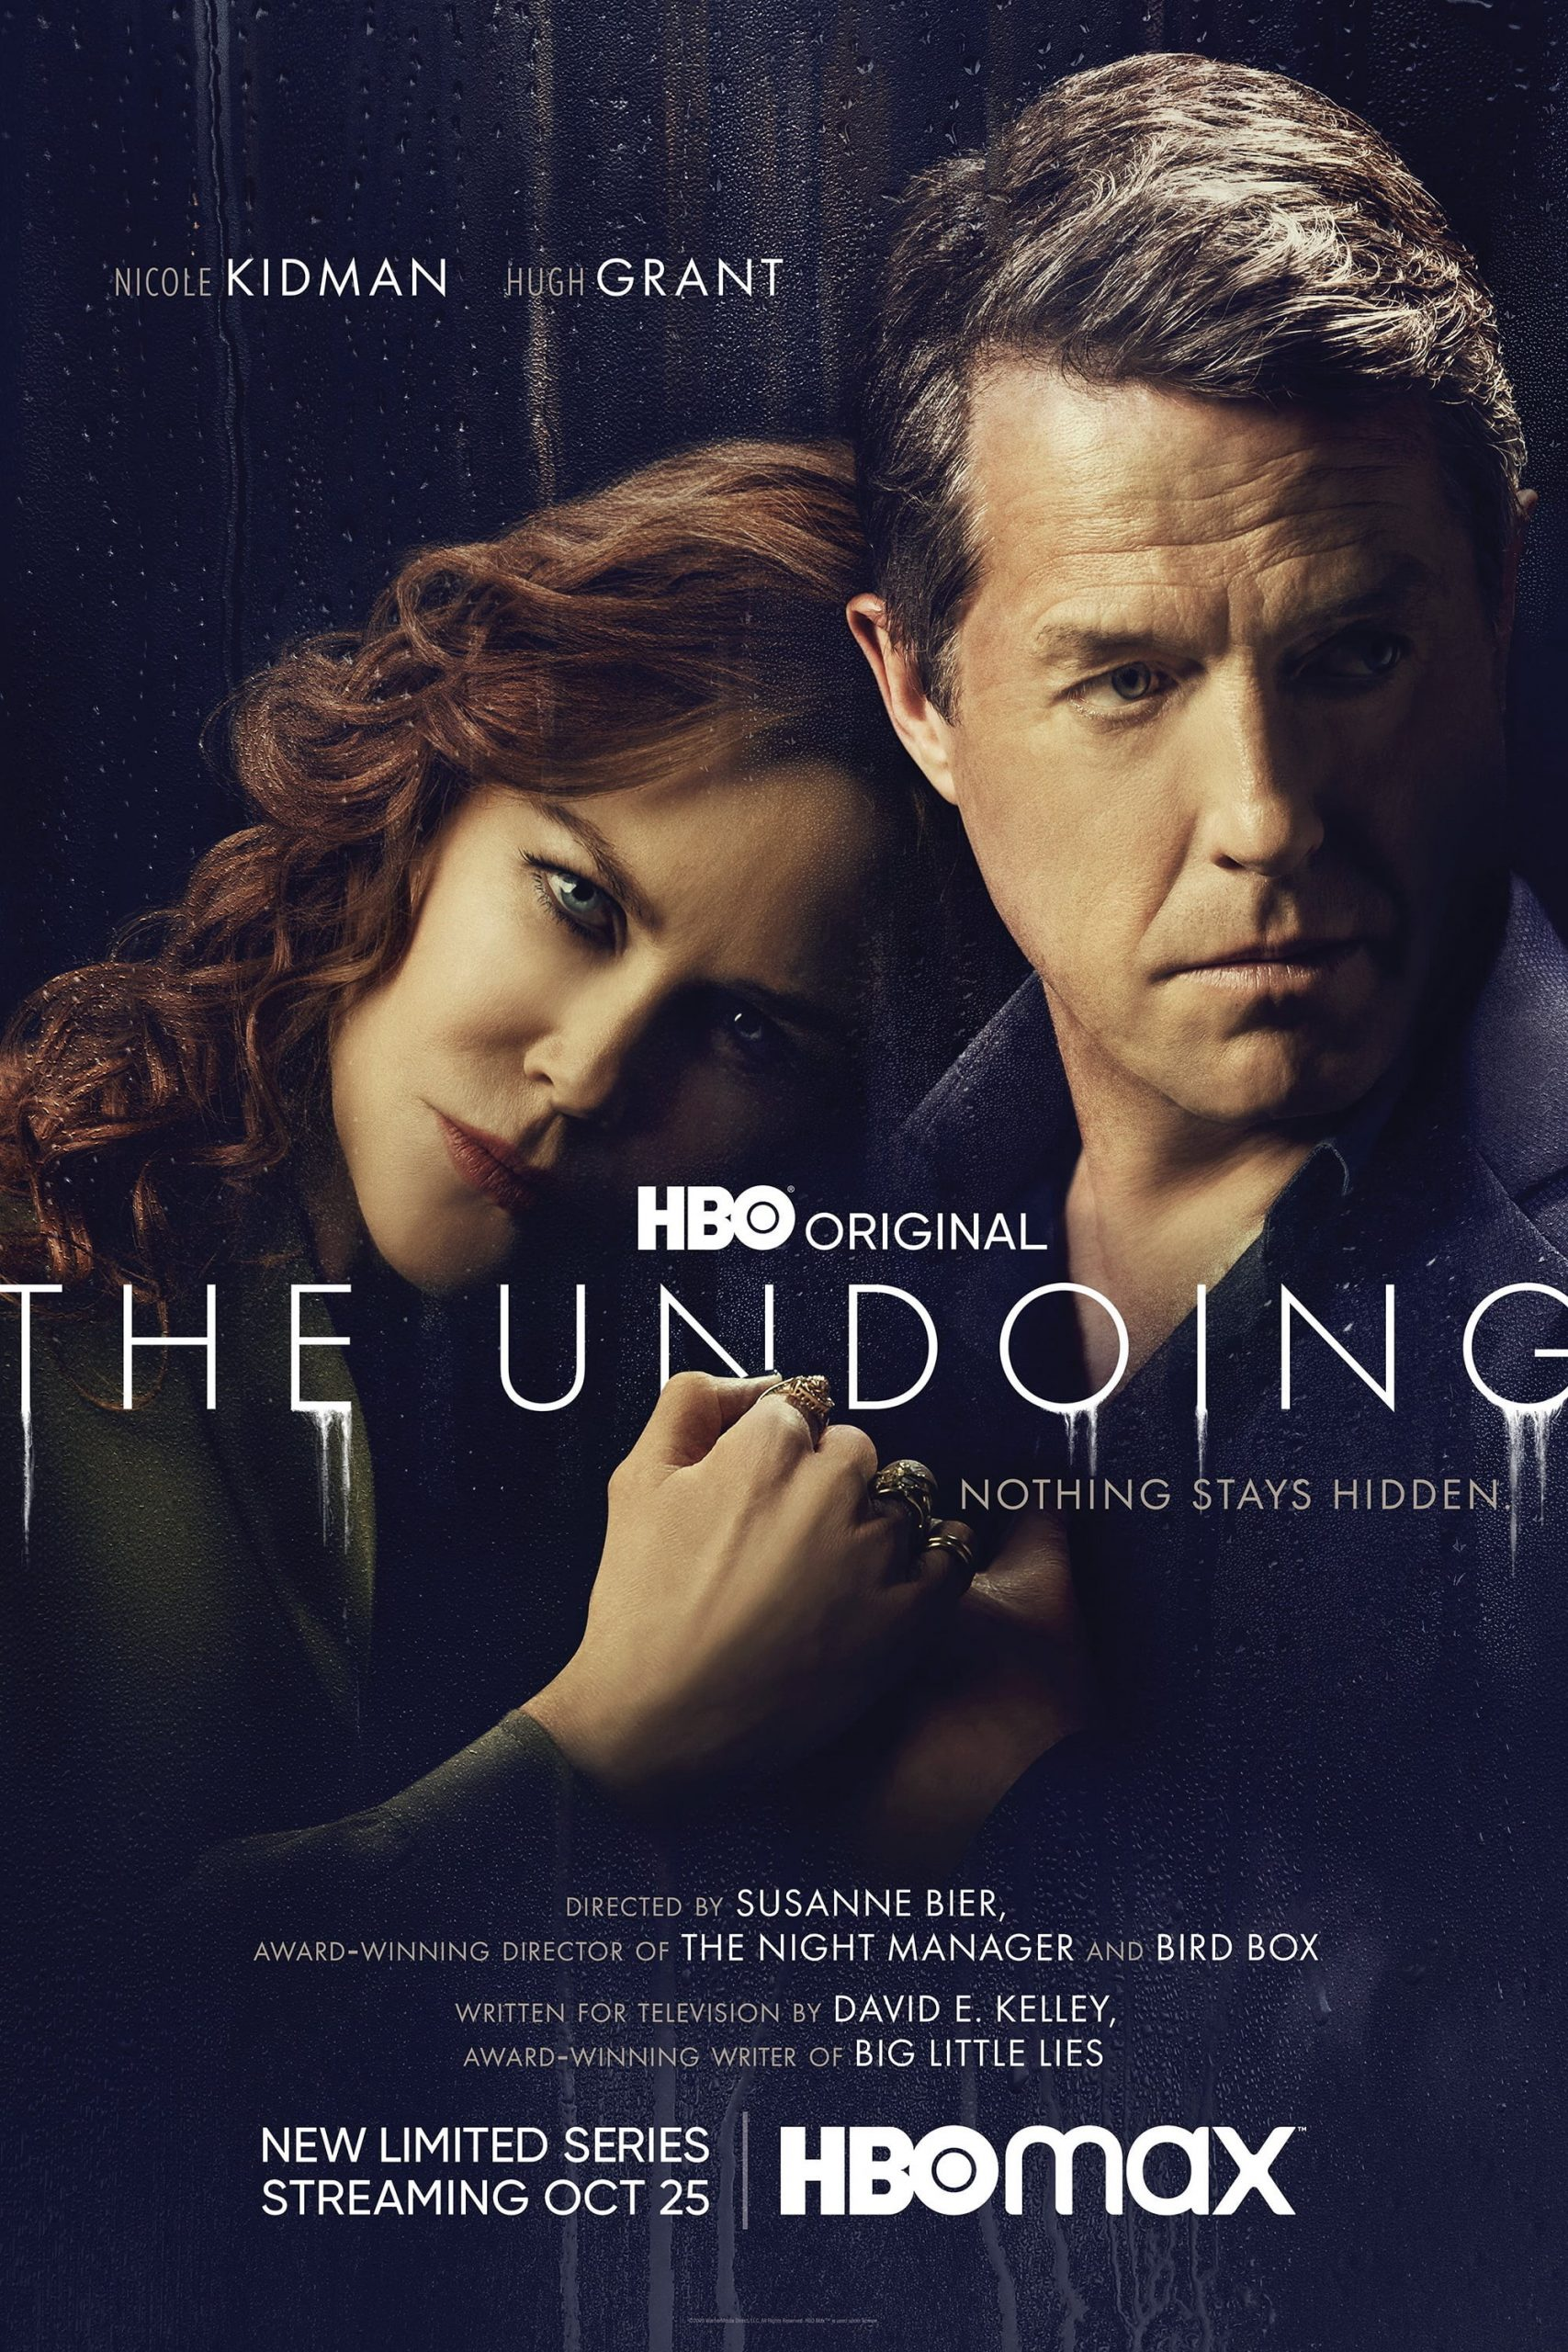 The Undoing Season 1 Episode 4 Subtitle (English Srt) Download